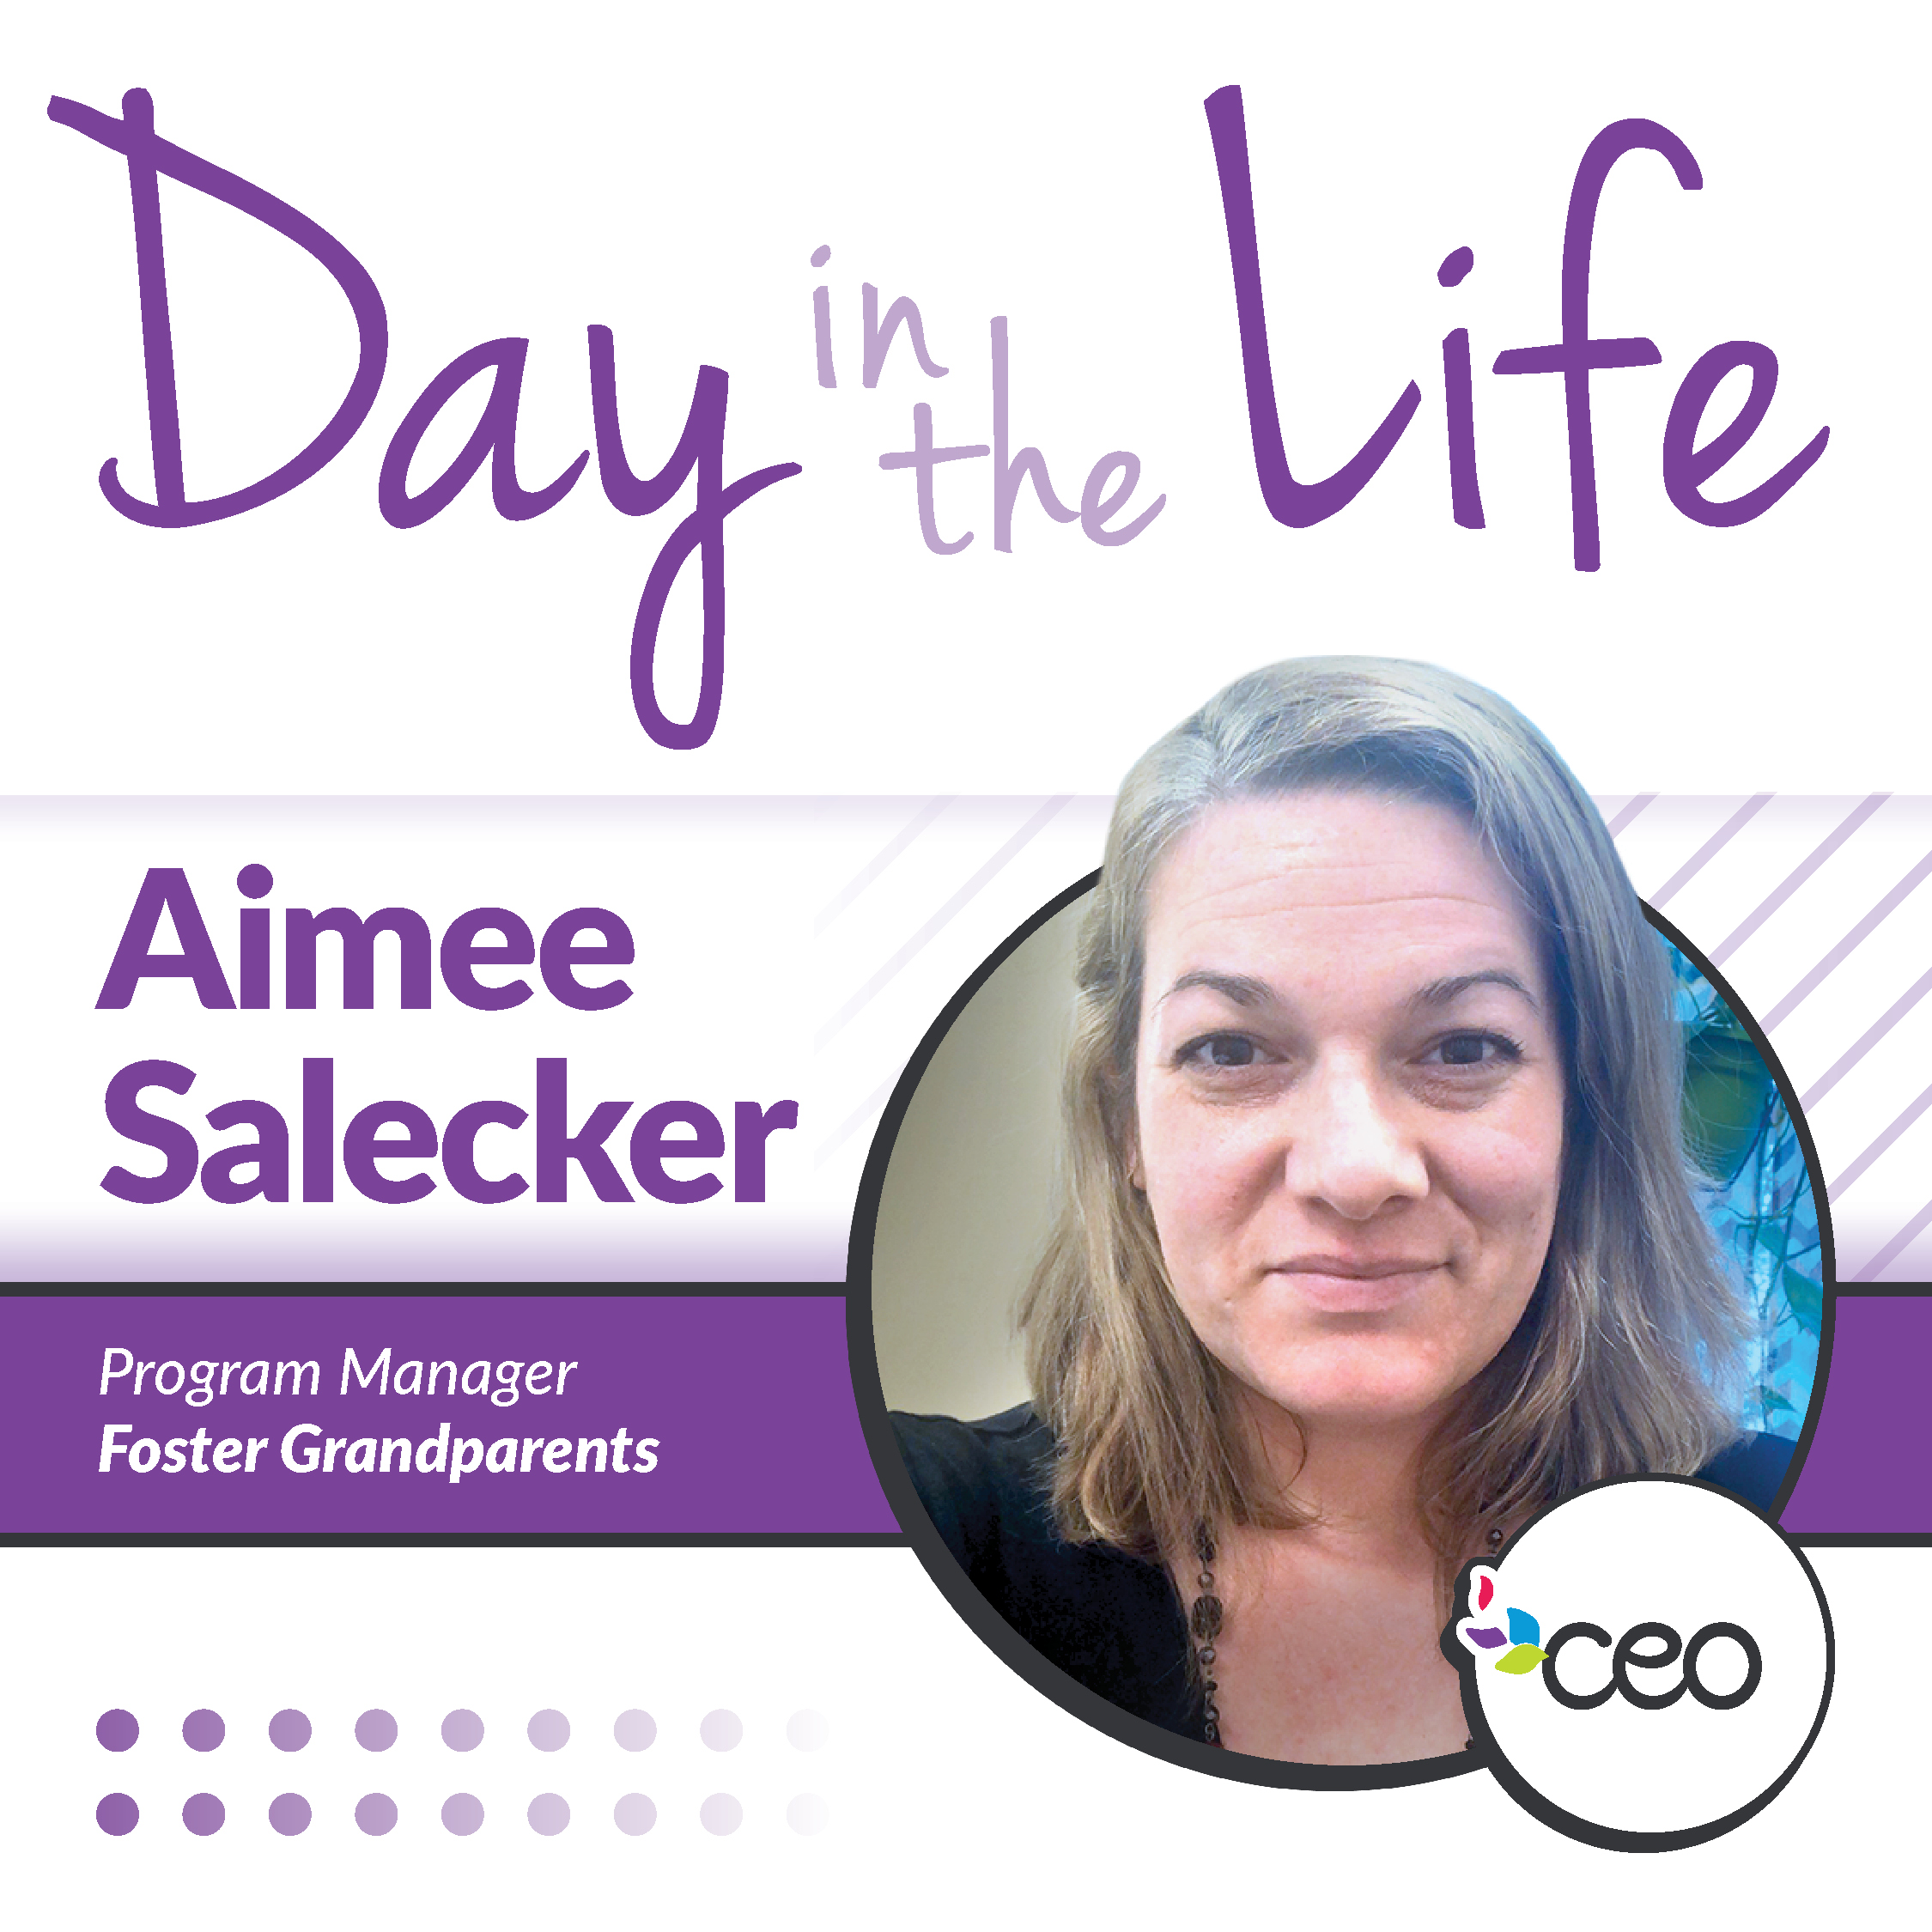 A Day in the Life of Aimee Salecker- Foster Grandparent Program Manager